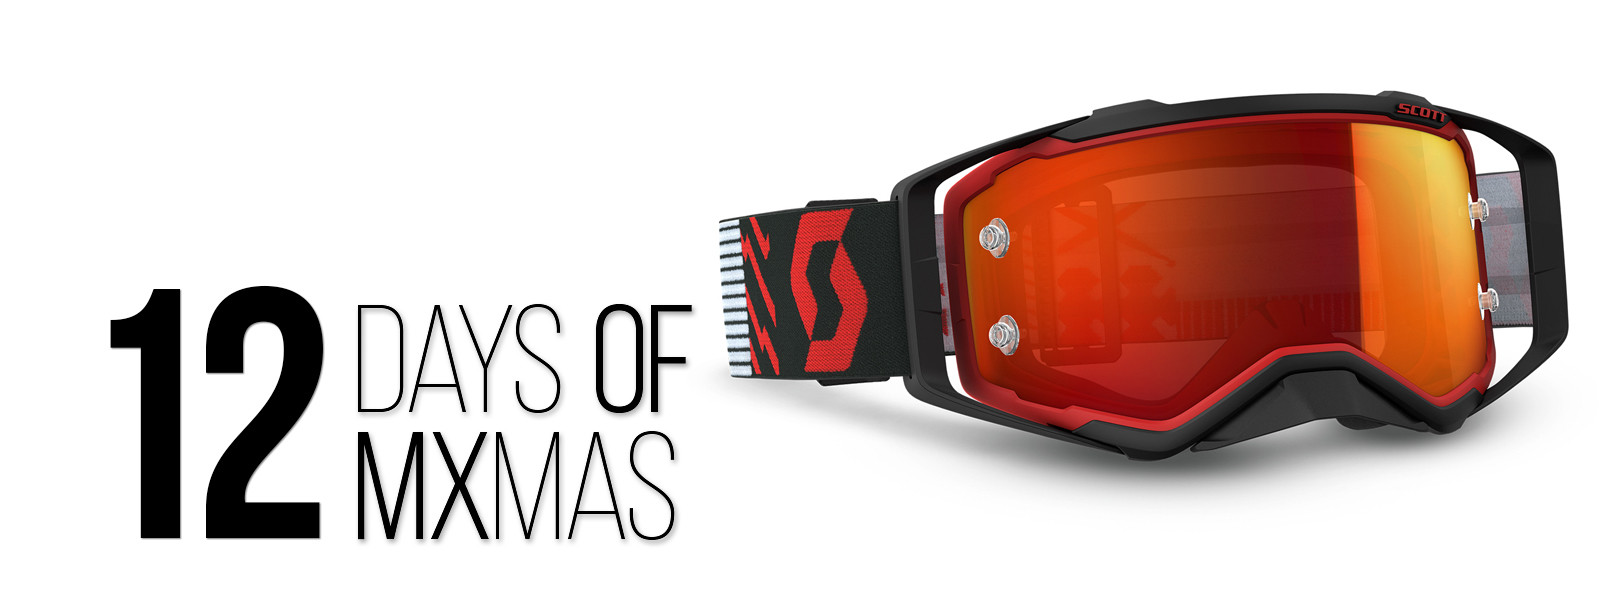 Vital MX 12 Days of MXmas: Day 13